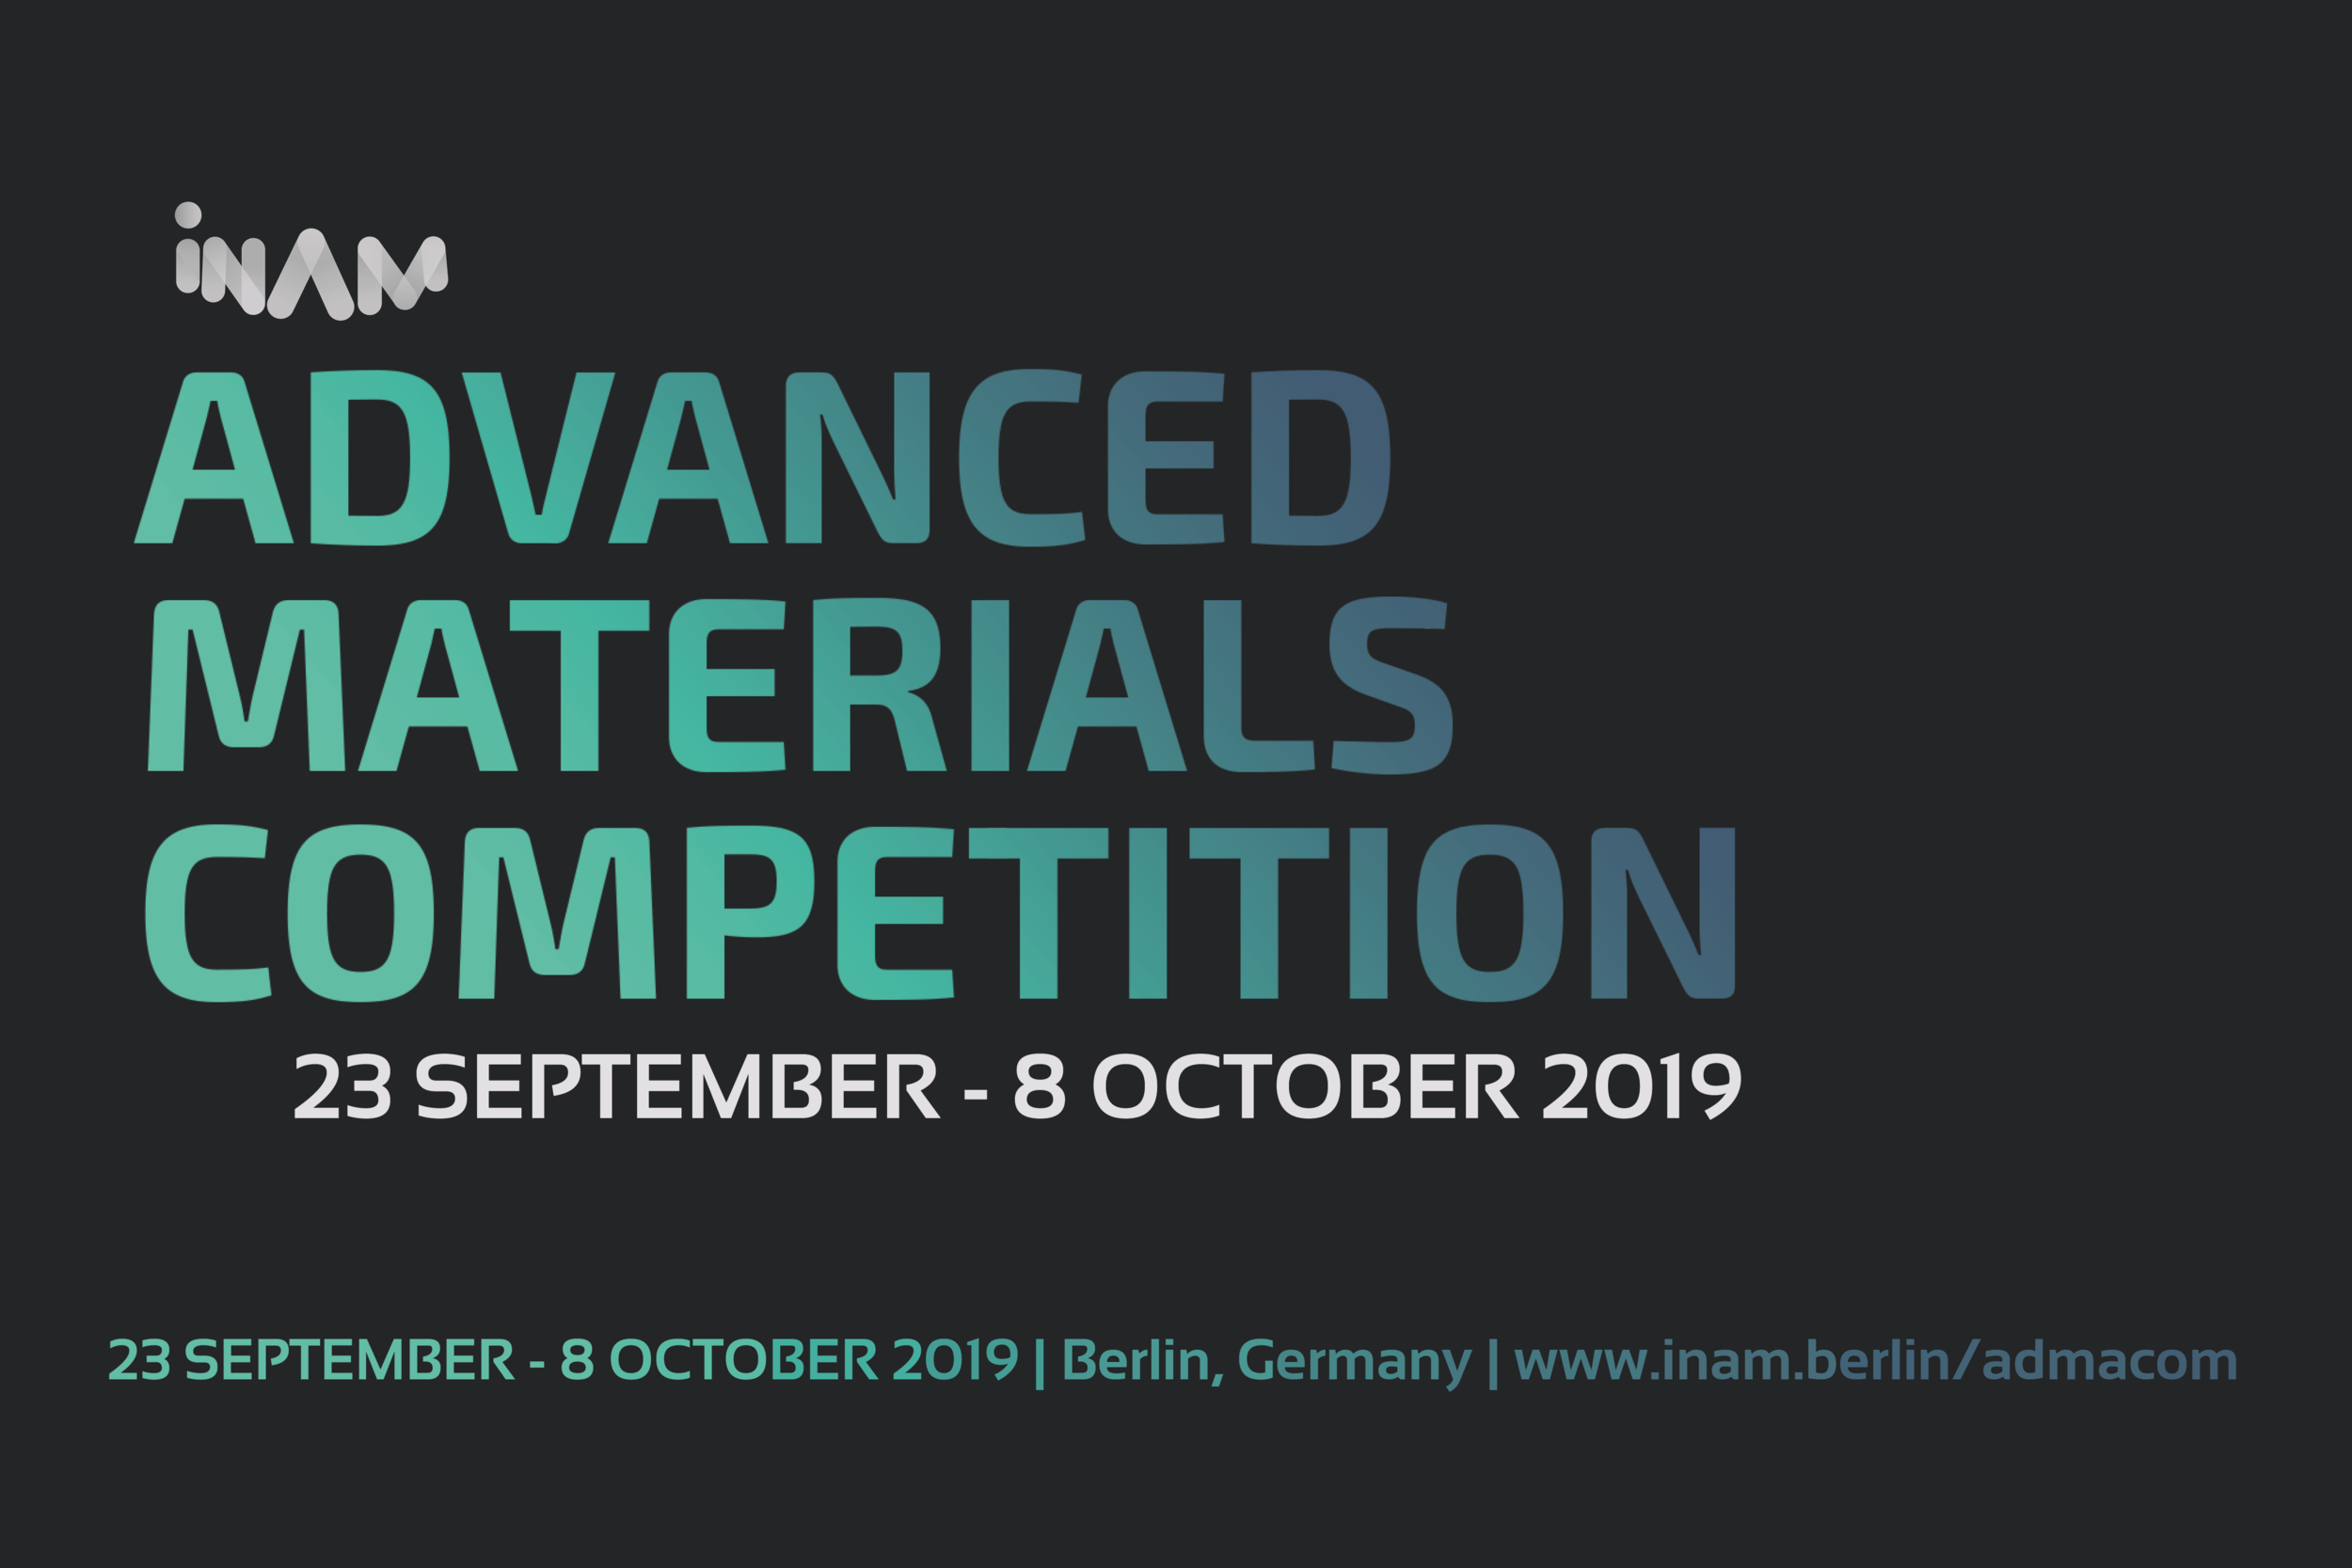 2019 ADVANCED MATERIALS COMPETITION - AdMaCom is a fast-paced accelerator program that will bring together the brightest minds in the Materials sector and will allow you access to a broad infrastructure in Berlin to test and improve your technology.